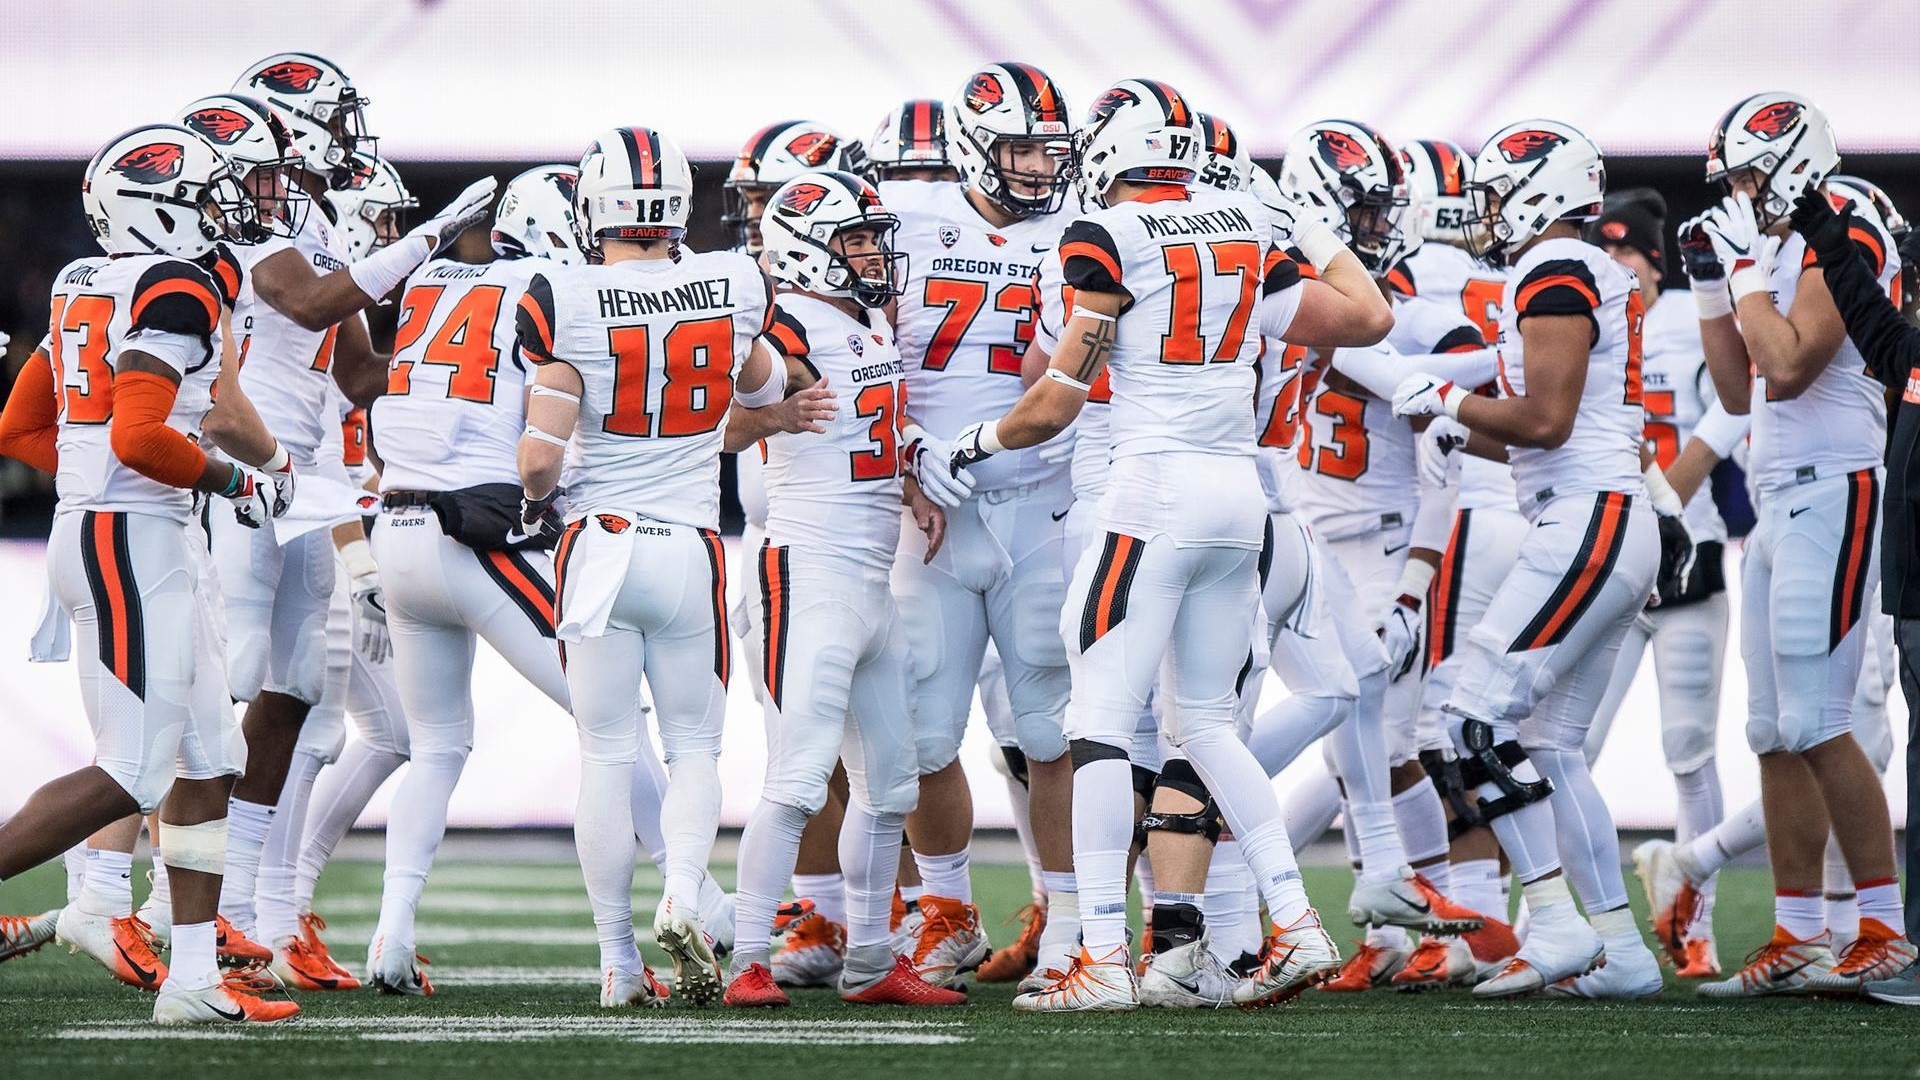 Beavers Ready For #CivilWar Matchup Friday - Oregon State University